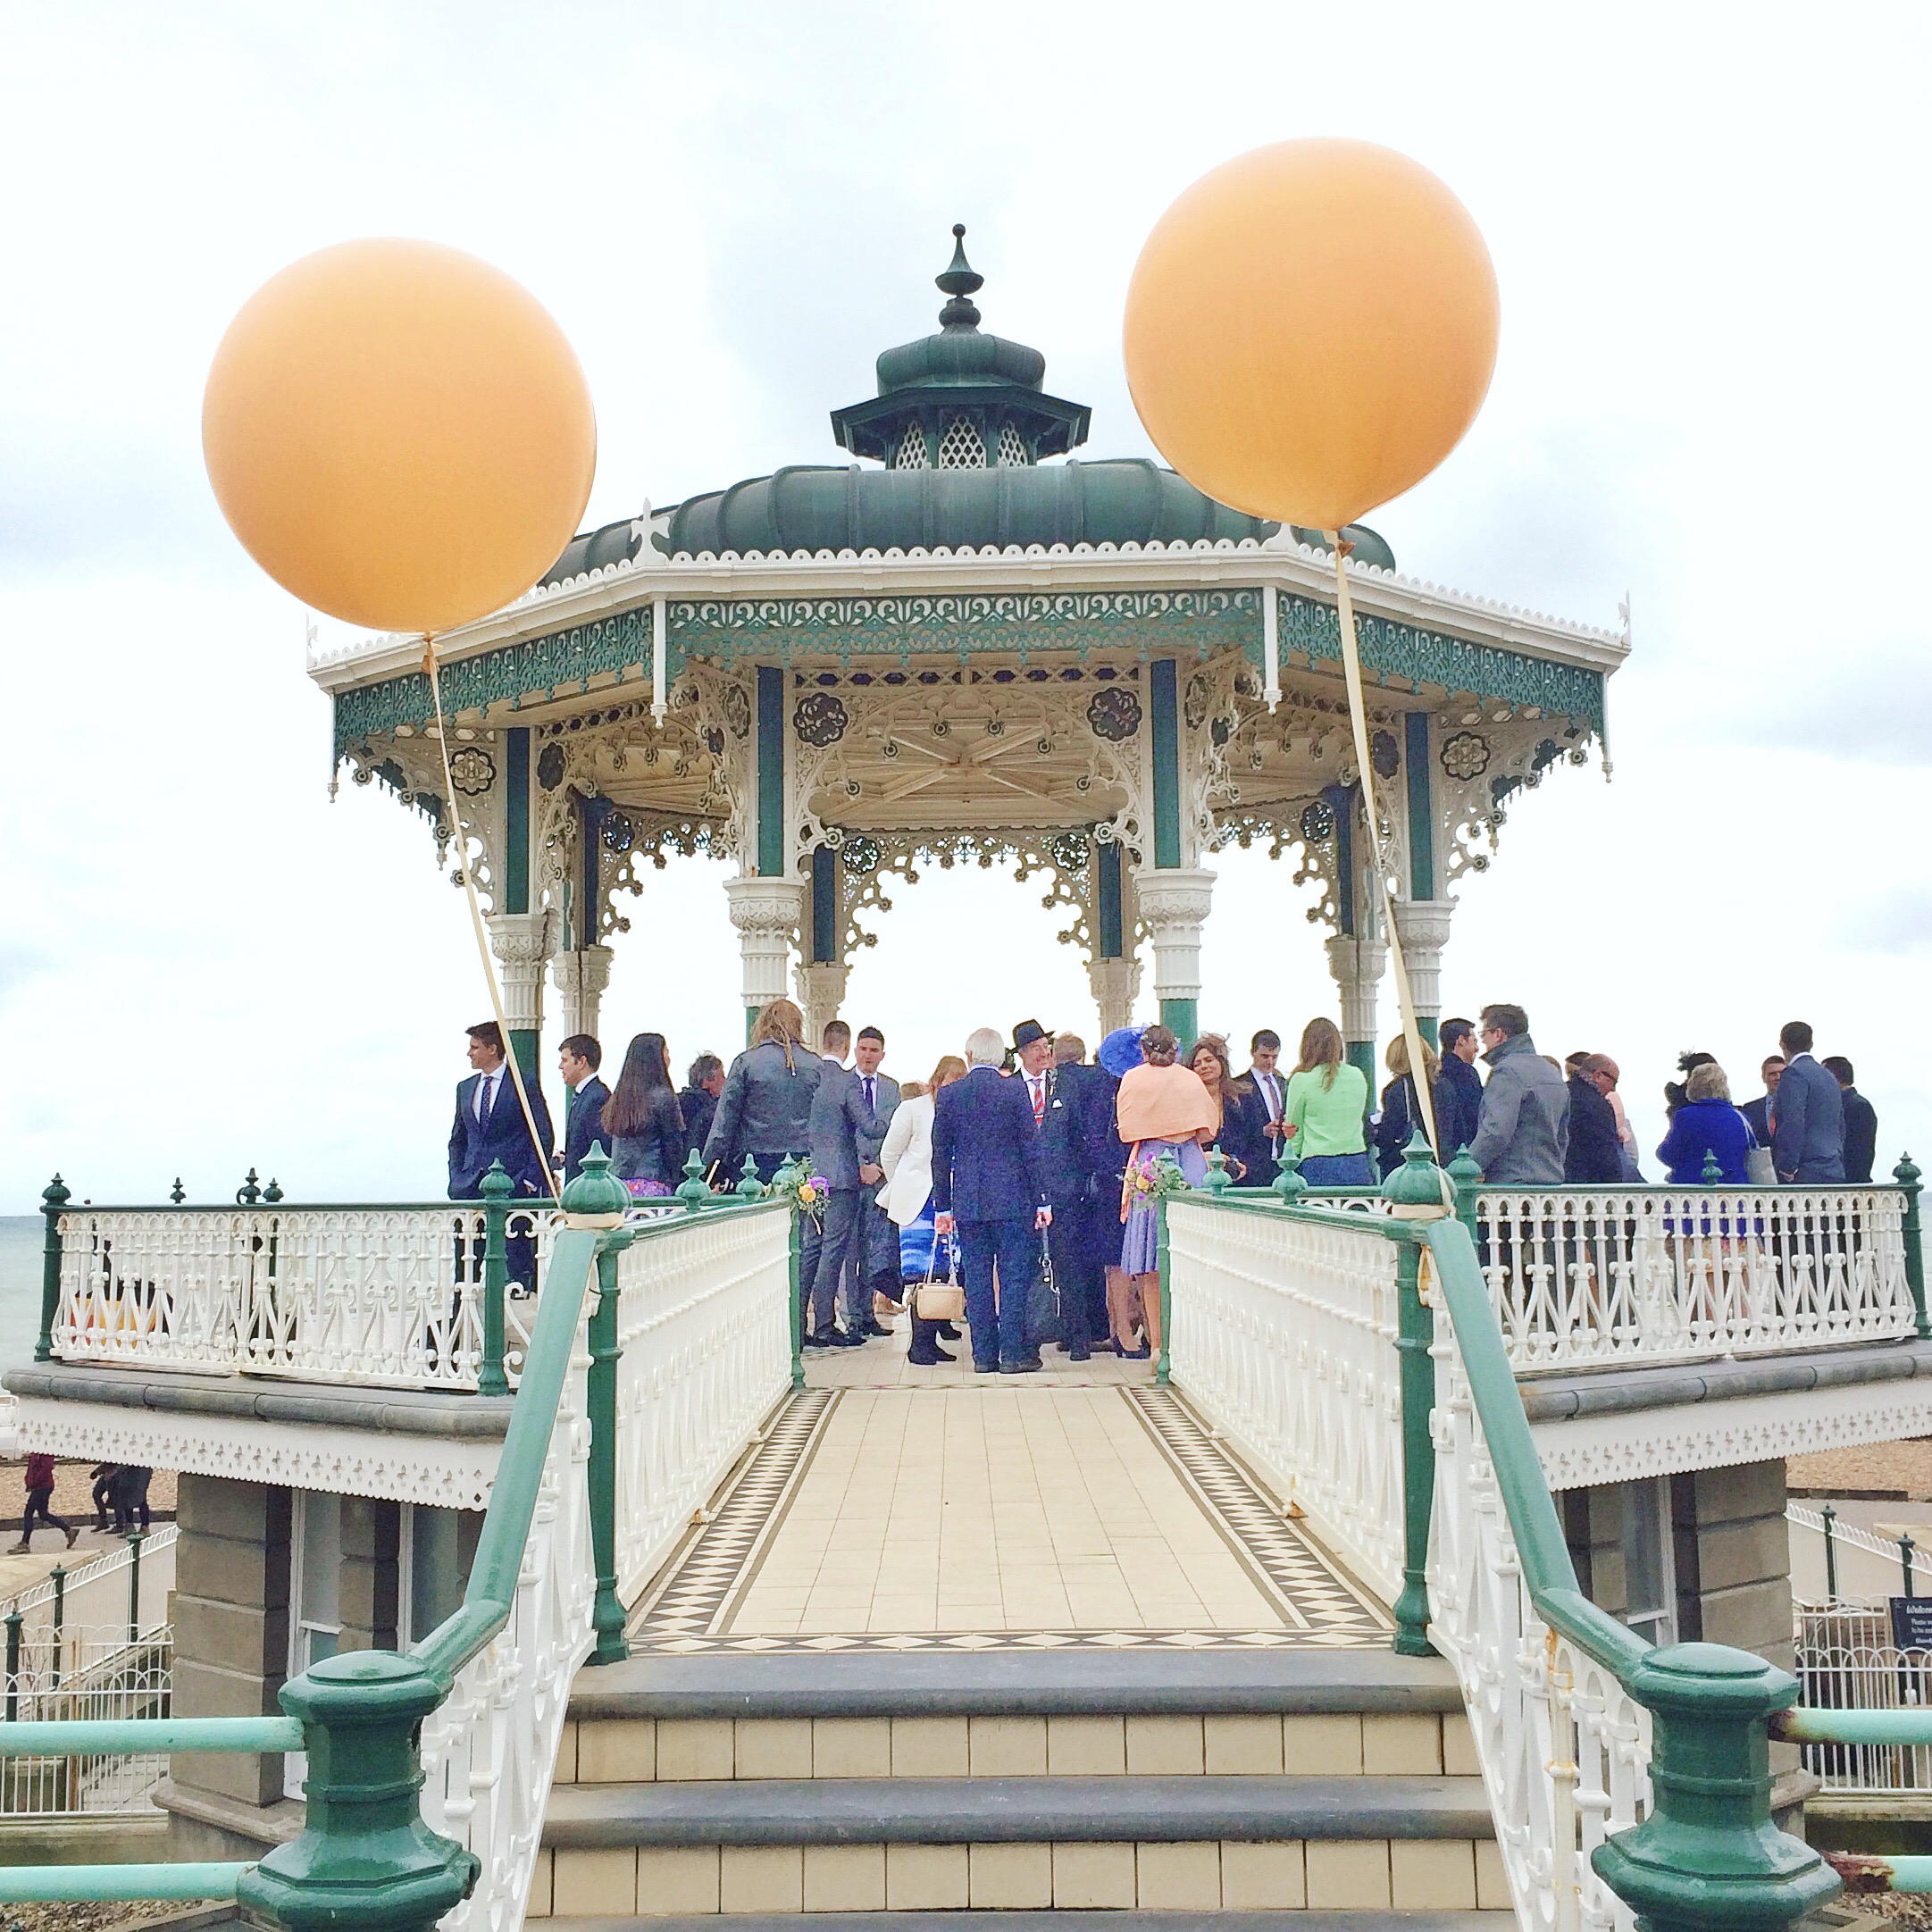 giant-balloons-for-brighton-bandstand-wedding.jpg